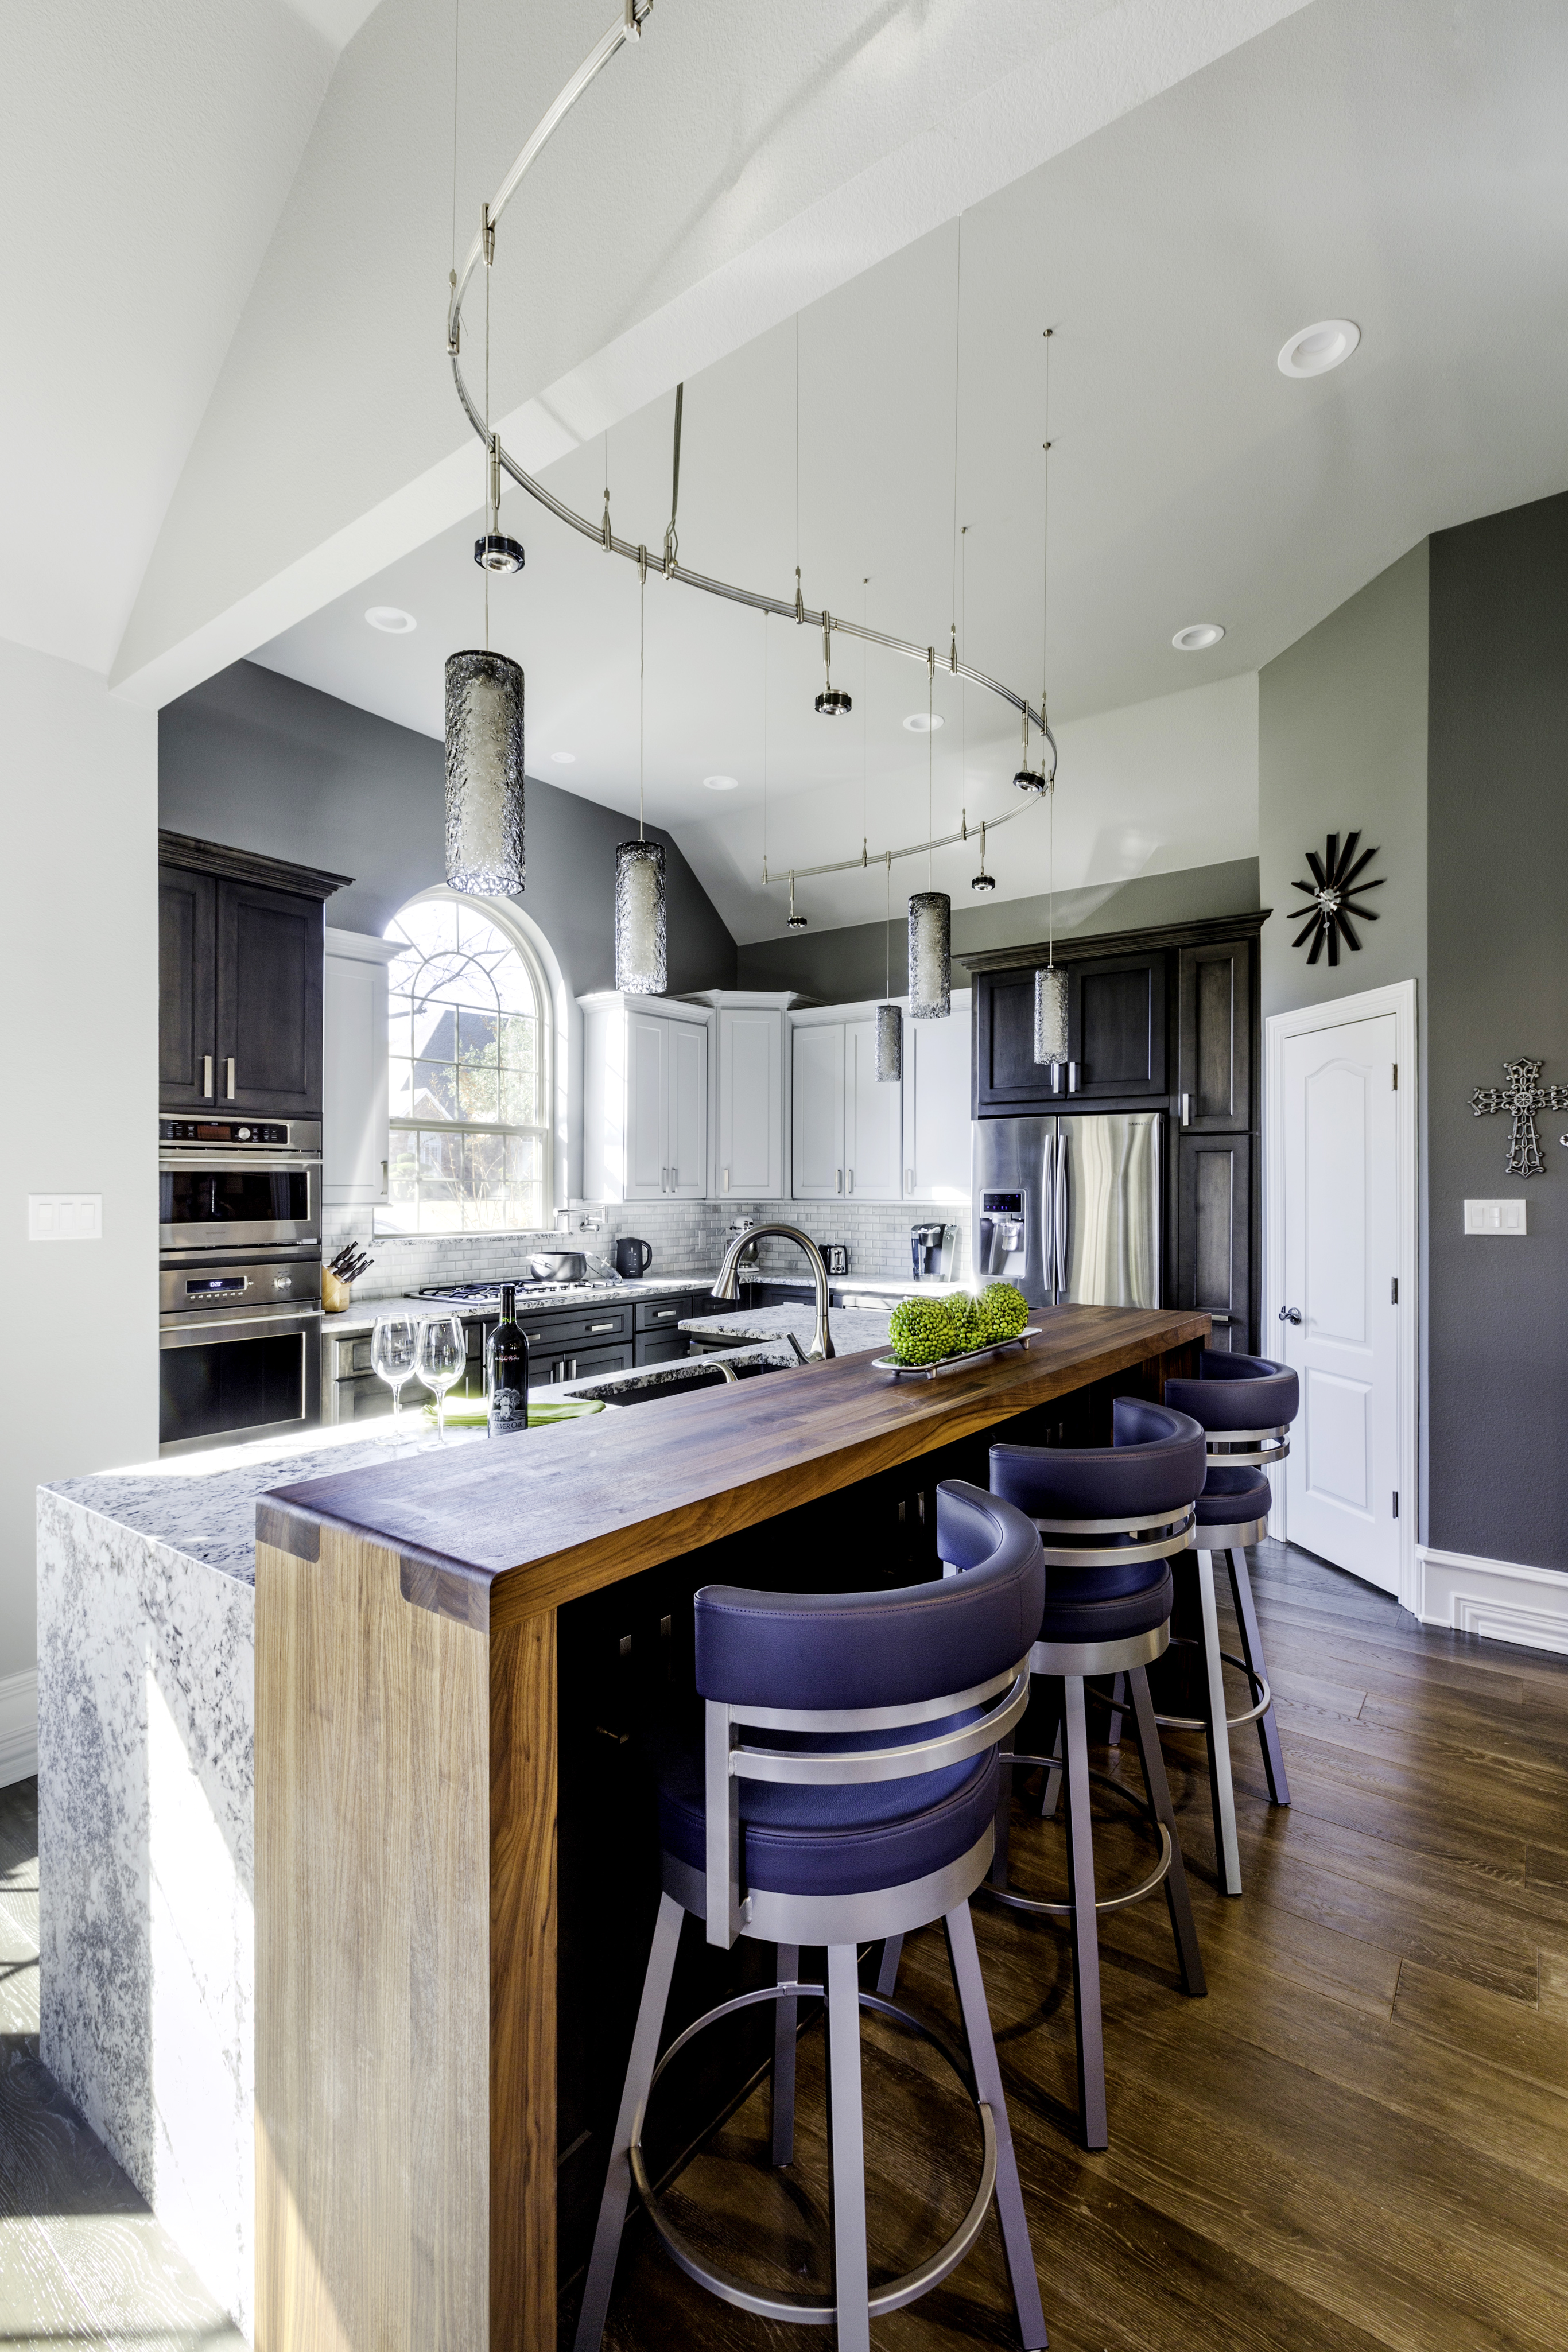 Light Gray and Dark Gray Kitchen Cabinets